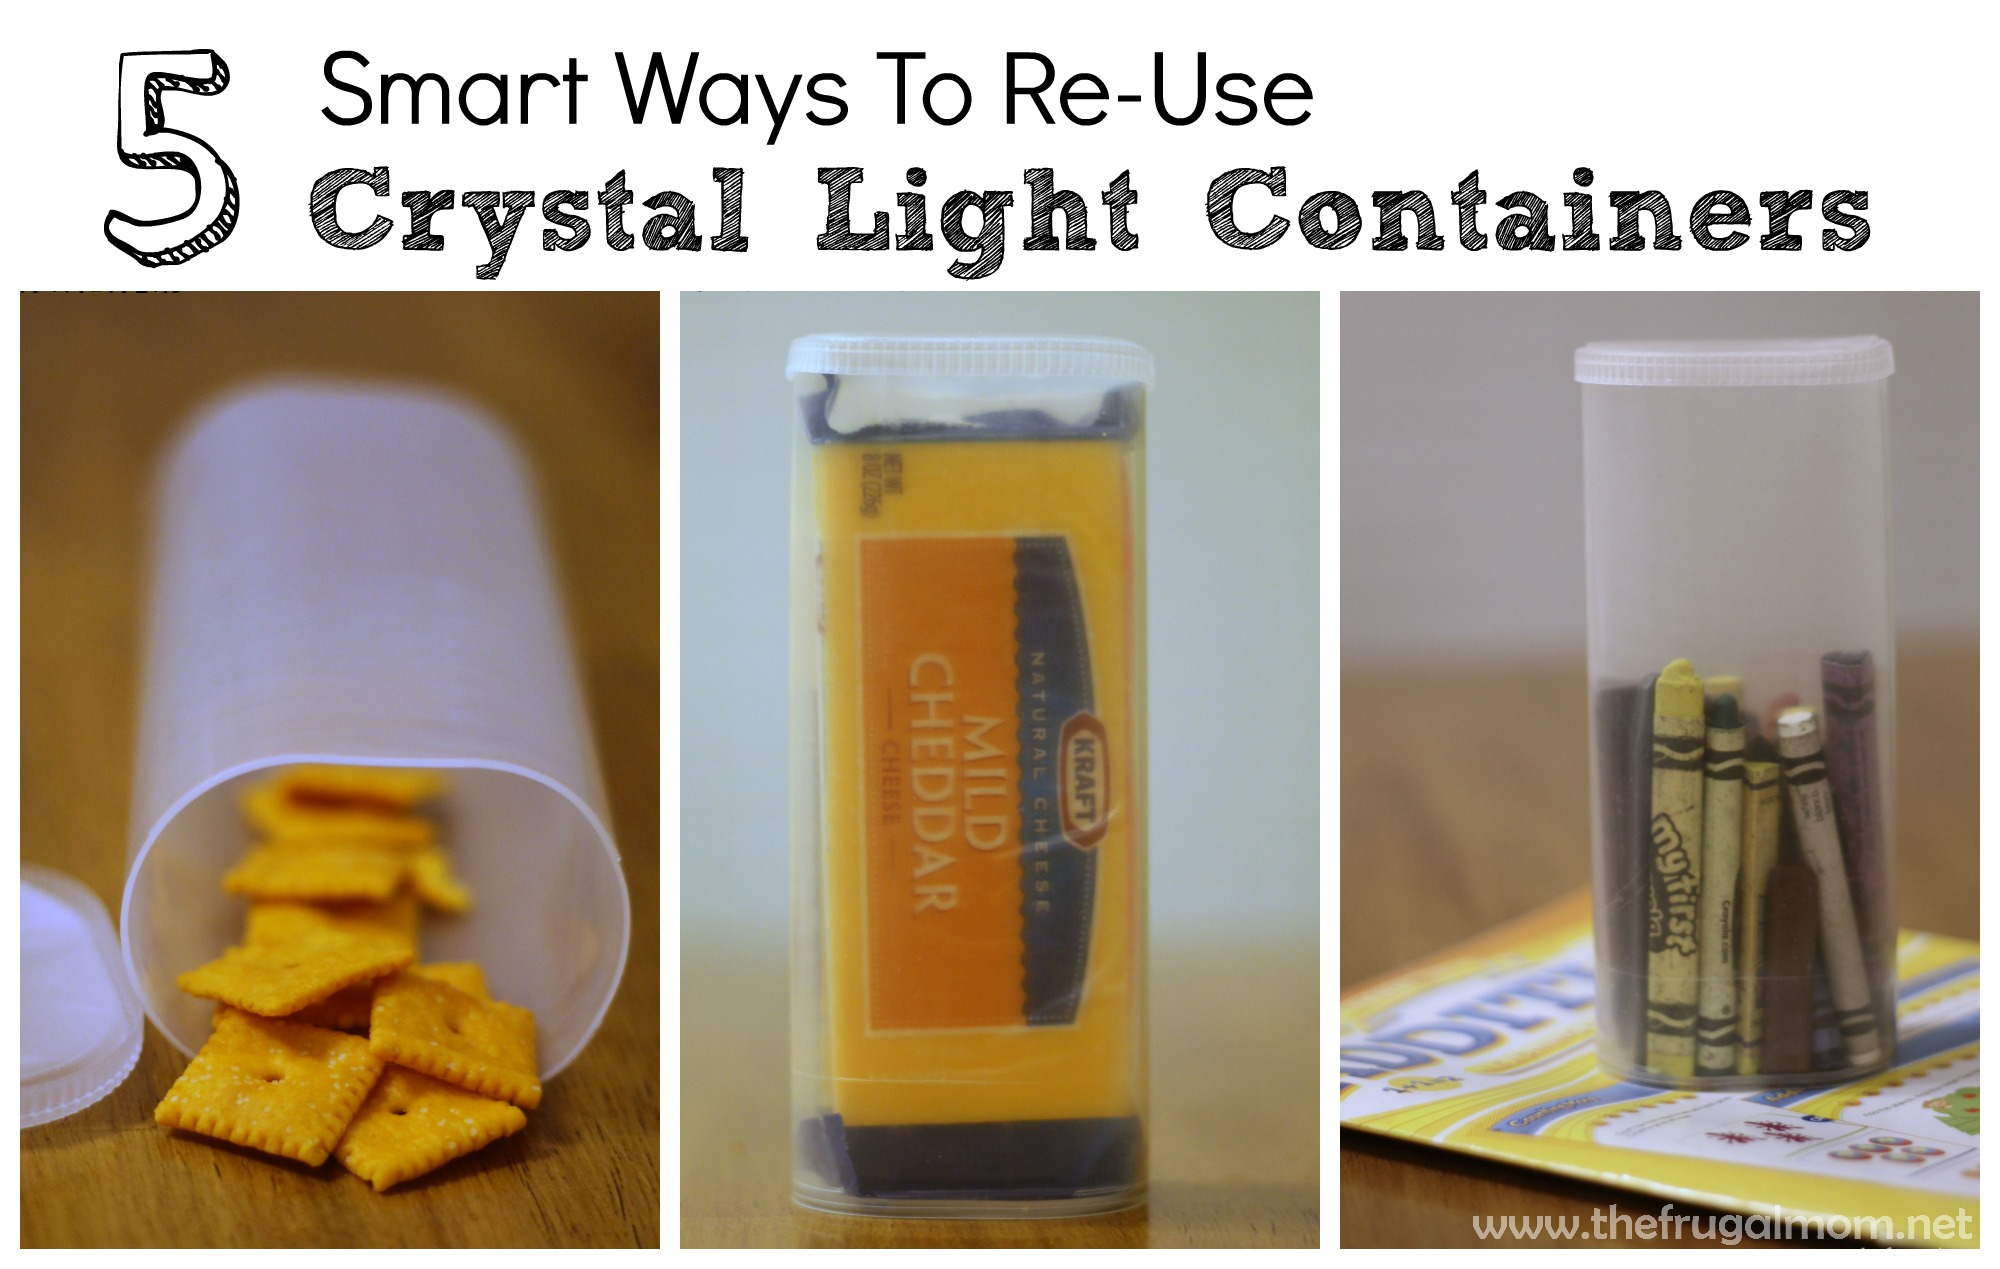 ... reuse Crystal Light containers… but the possibilities are endless